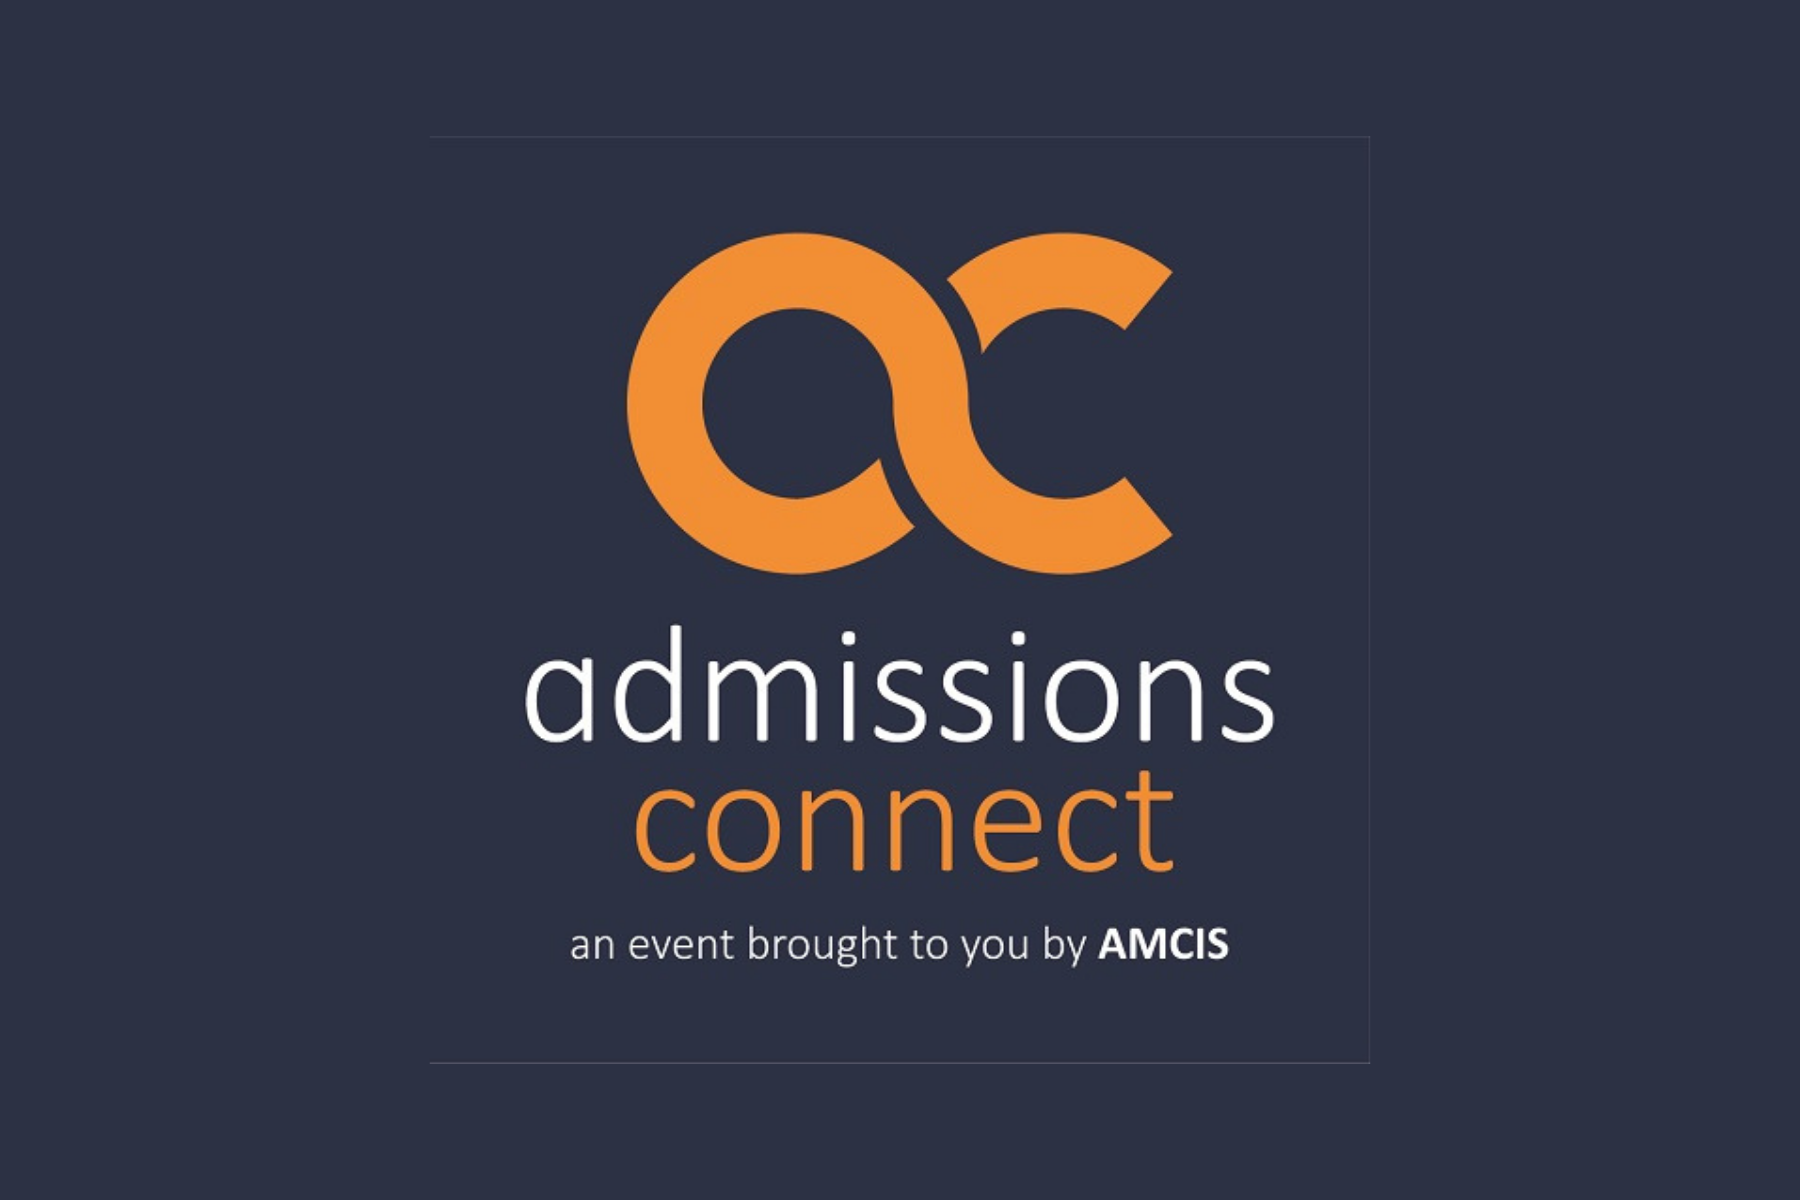 admissions connect event